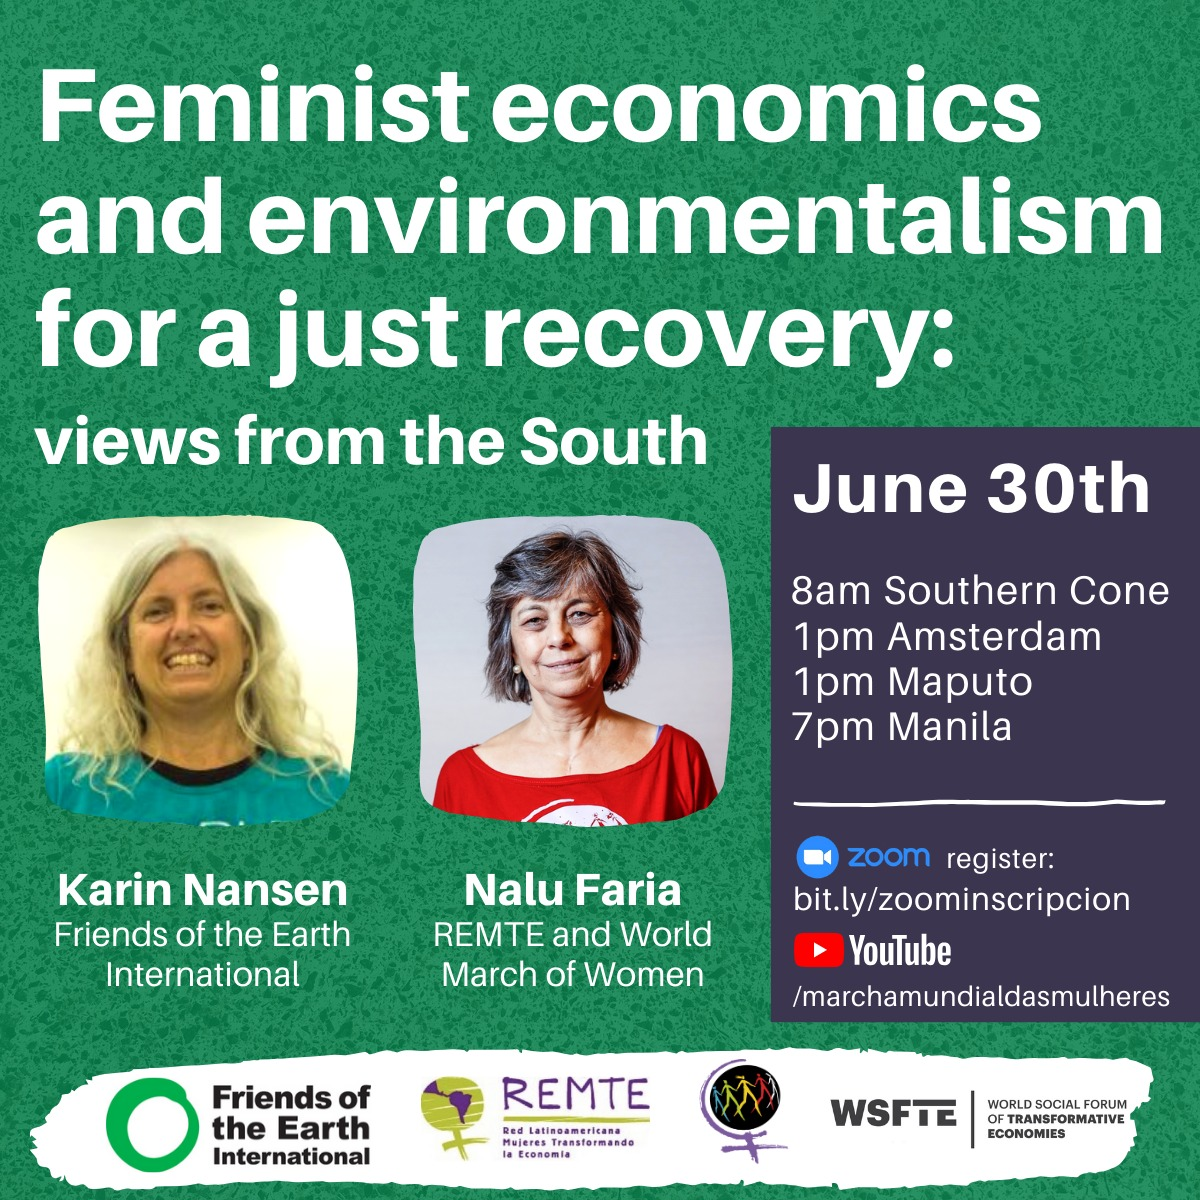 Feminist economy and environmentalism for a just recovery: views from the South